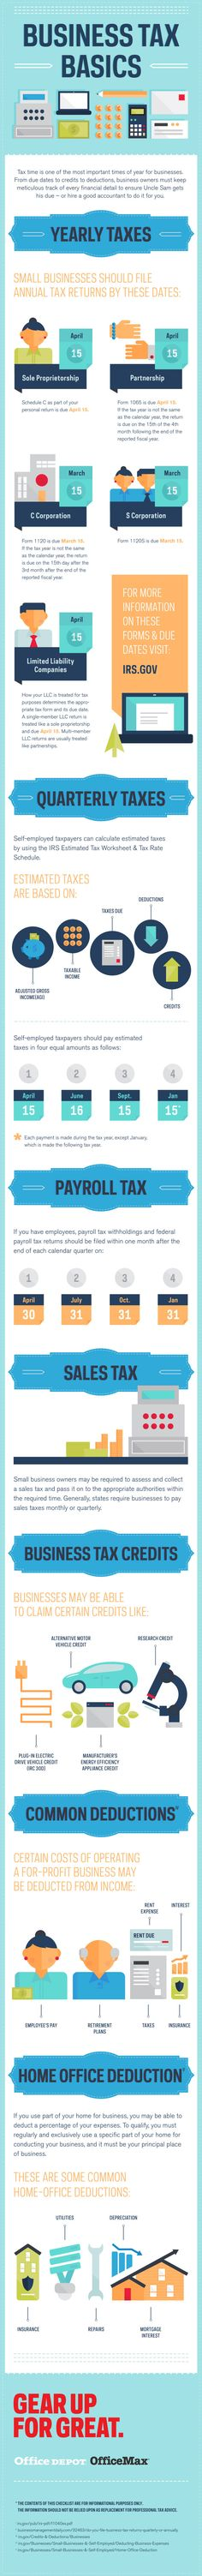 135 best infographics images on pinterest info graphics business tax basics small business office depot premium infographic solutioingenieria Image collections